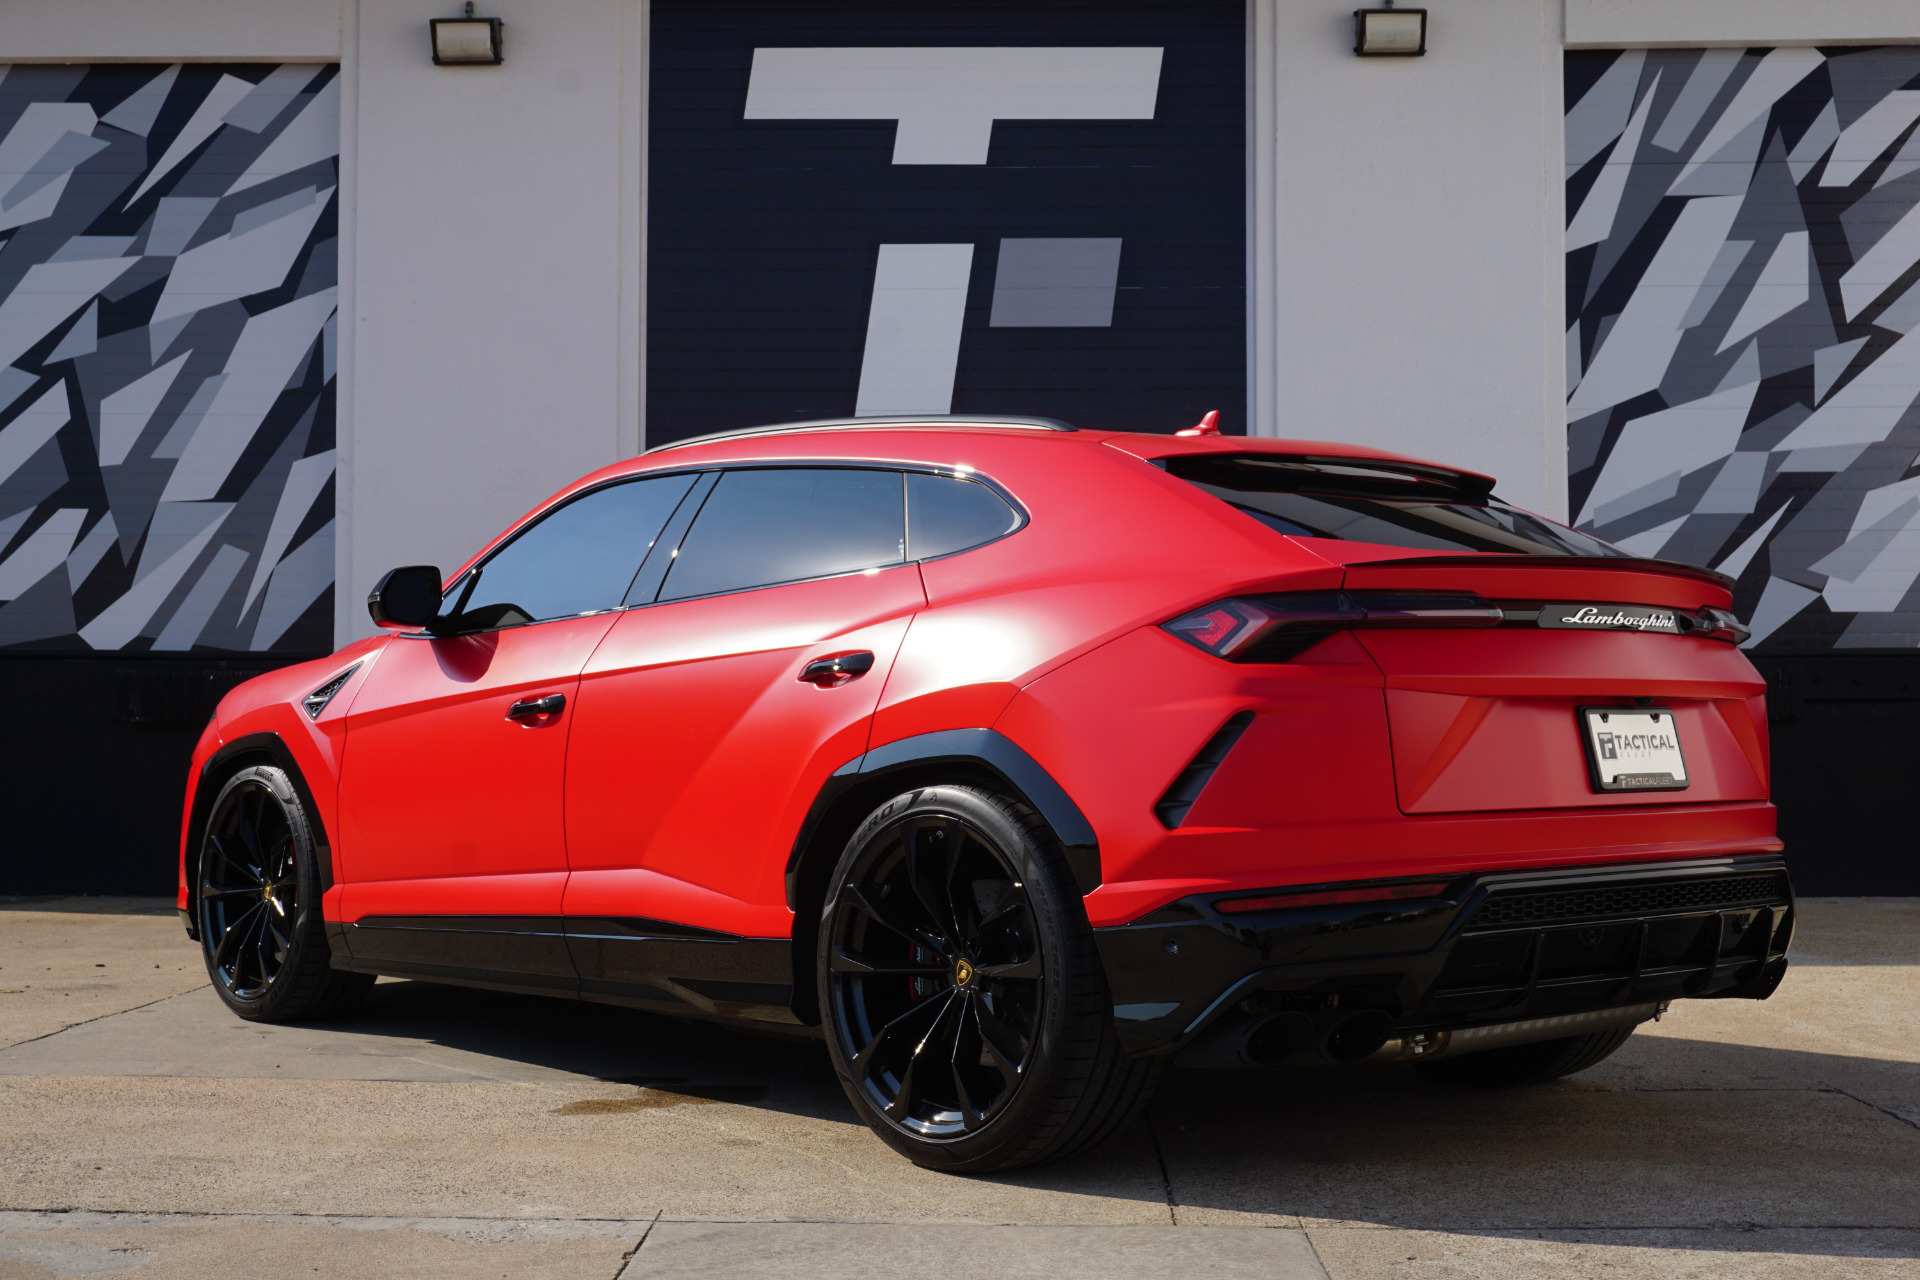 Used 2019 Lamborghini Urus For Sale 254 900 Tactical